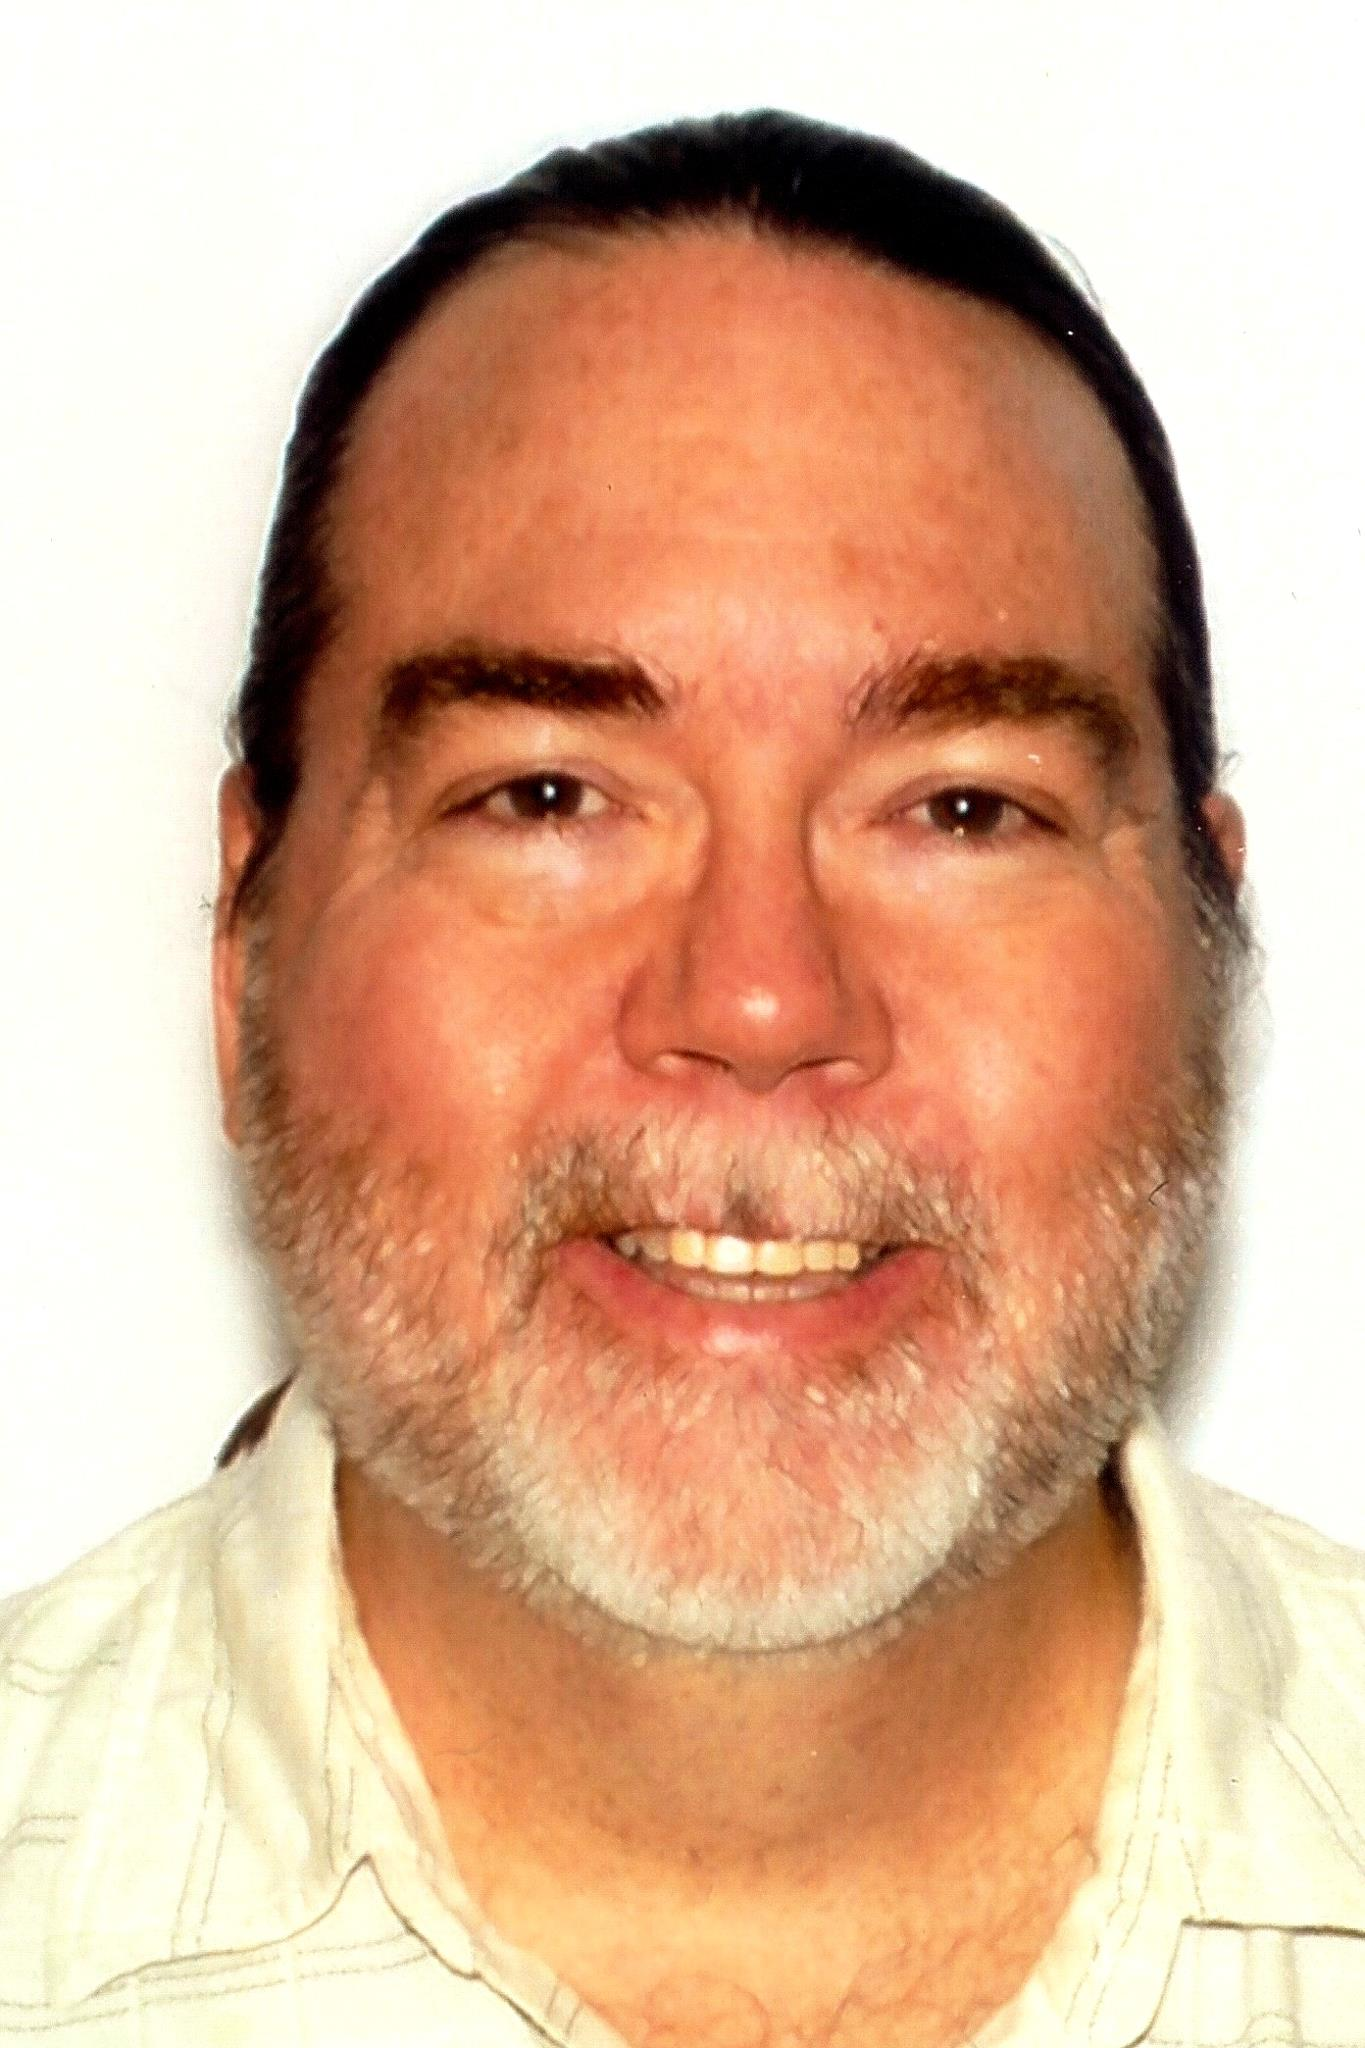 Tracy Omdahl - Quality    Tracy is our resident Quality Expert. He has 40+ years of experience in Quality Management. He's performed thousands of audits and audited hundreds of thousands of quality records. His medical devices competence with quality management systems and regulatory requirements of FDA, ISO, EU and rest-of-world is at the highest expert level.  Health Canada Certified CMDCAS auditor  American Society for Quality - CQE 11147, CPGP 58, CMQ/OE 265, CQA 434, CHA 59, CBA 58, CSQE 136, CRE 1565, CQT 10079, CMI 2033, CQIA 43, CCT 49, CSSYB 287, CQPA 2402 ISO, QS, VDA, TL & Med Dev Auditor. Former MBNQA Examiner FDA GD211 Certified